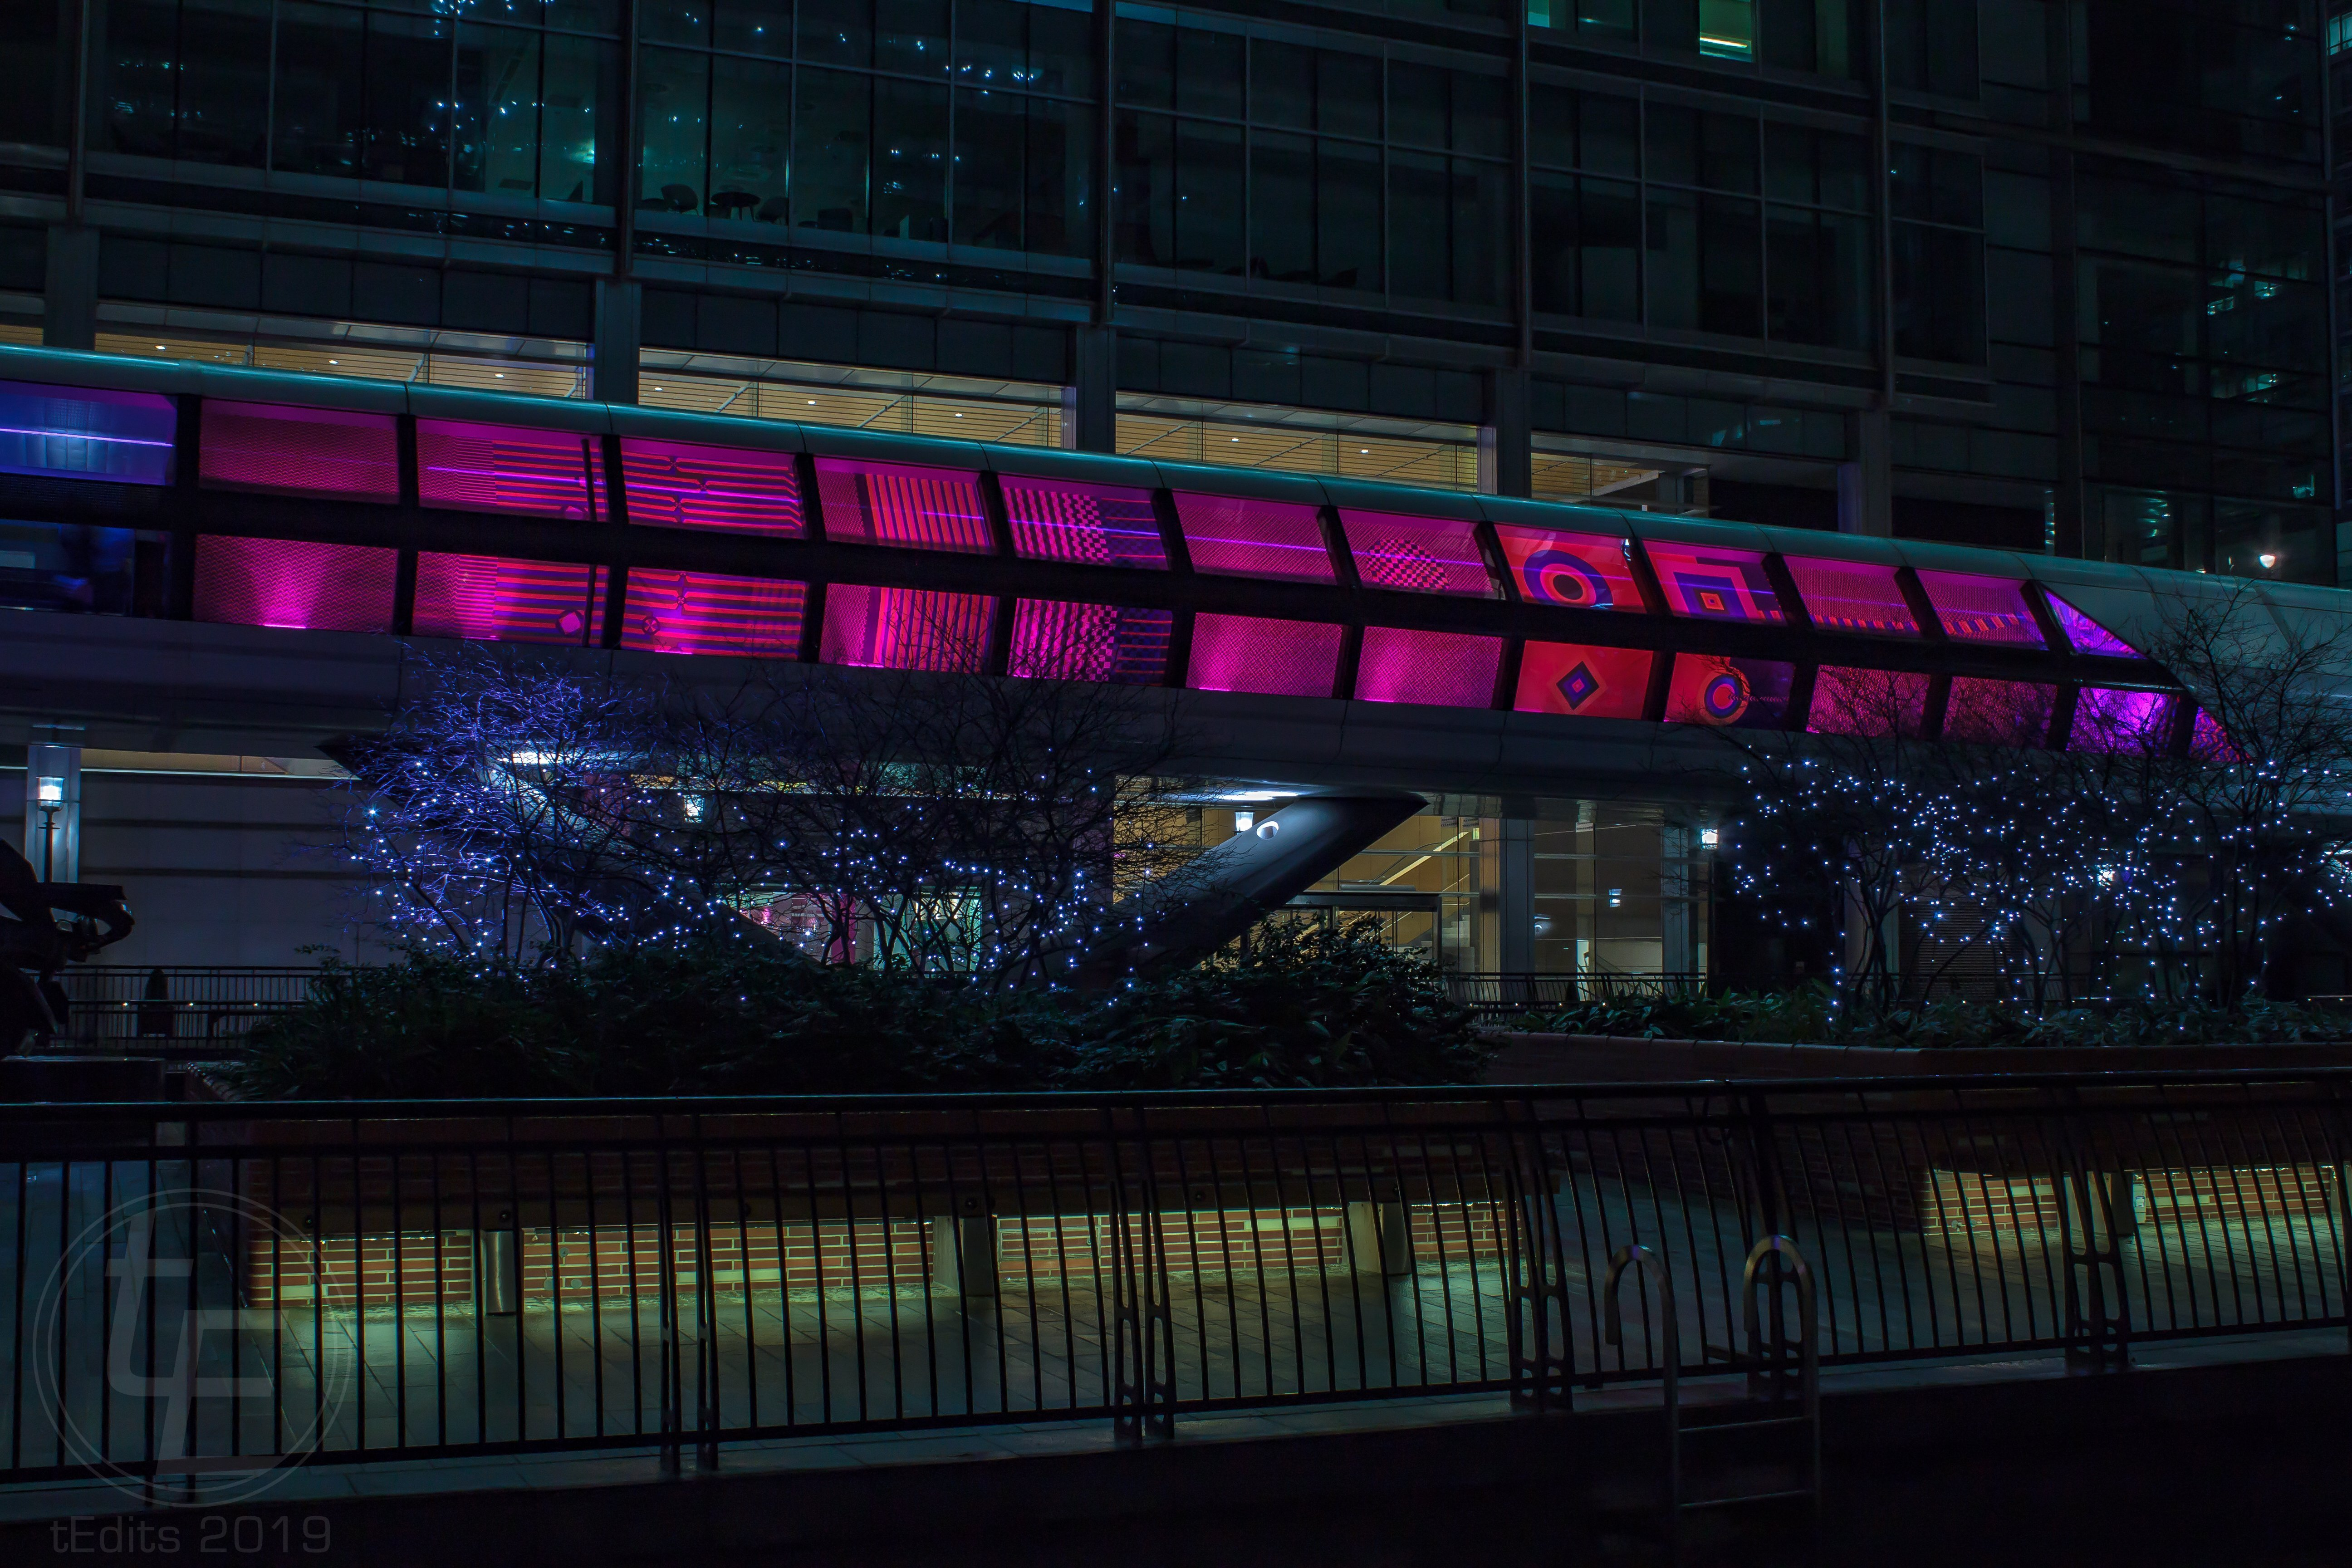 Canary Wharf Winter Lights 2019 - Colour Moves by Rombout Frieling Lab